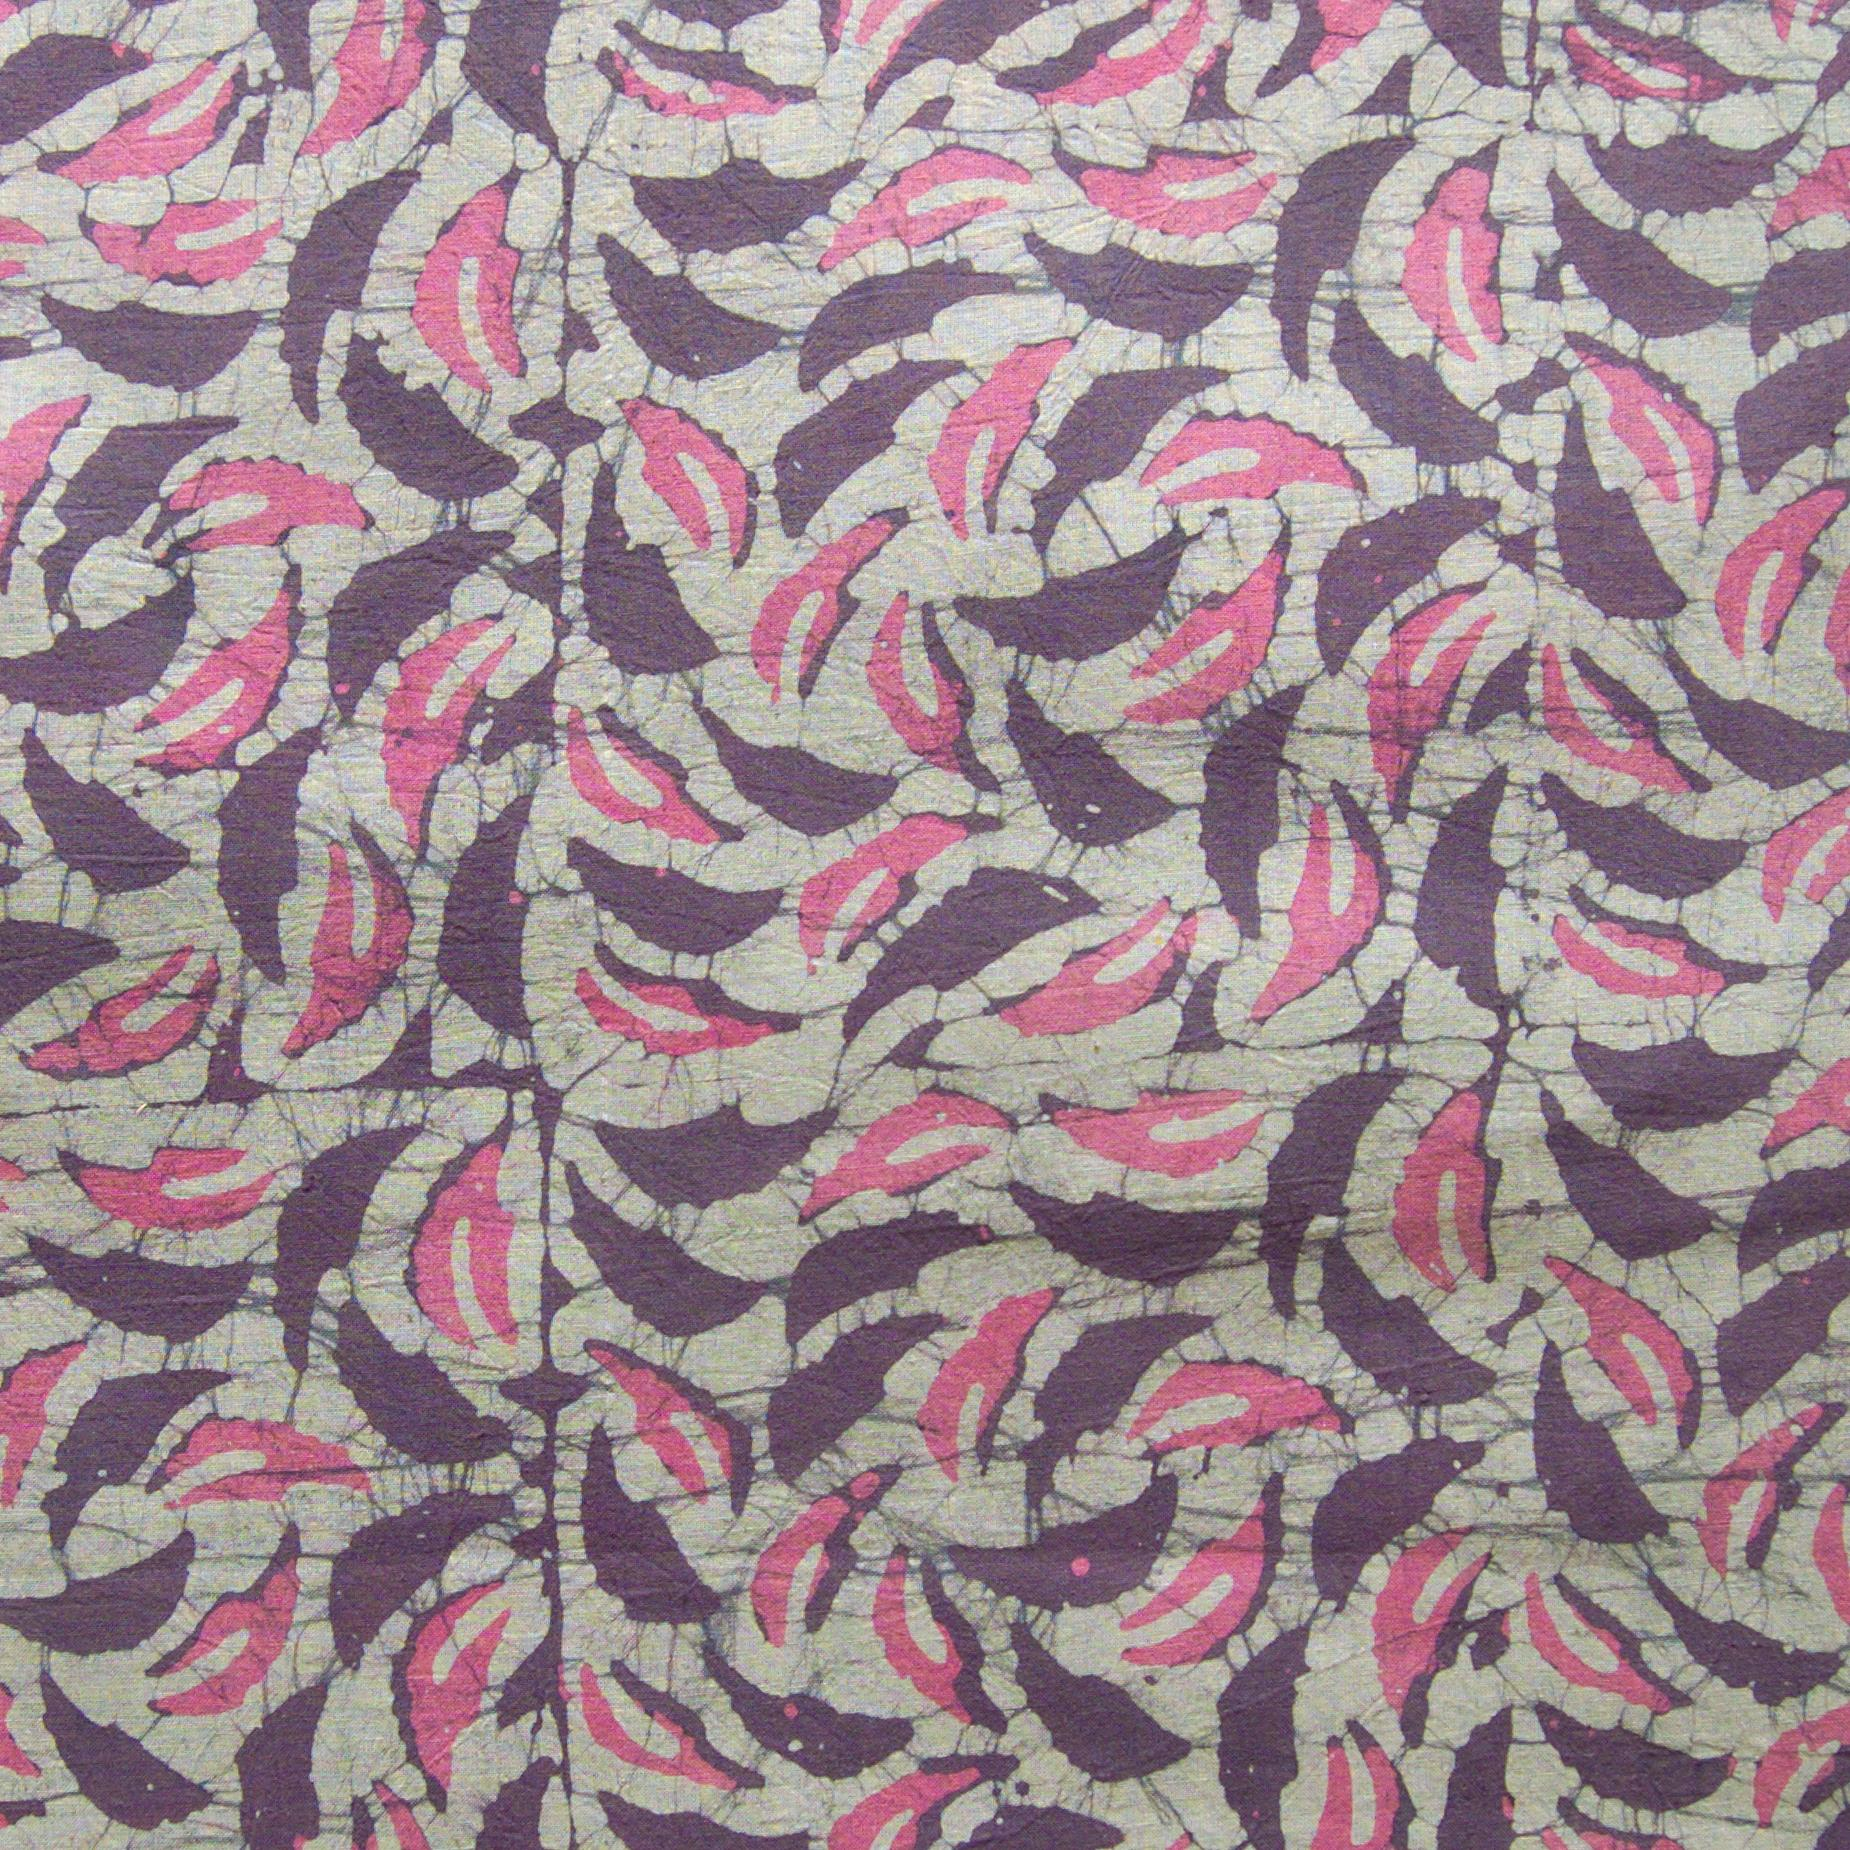 SHA30 - Block-Printed Batik Cotton Fabric From India - Autumnal Rustle Design - Flat